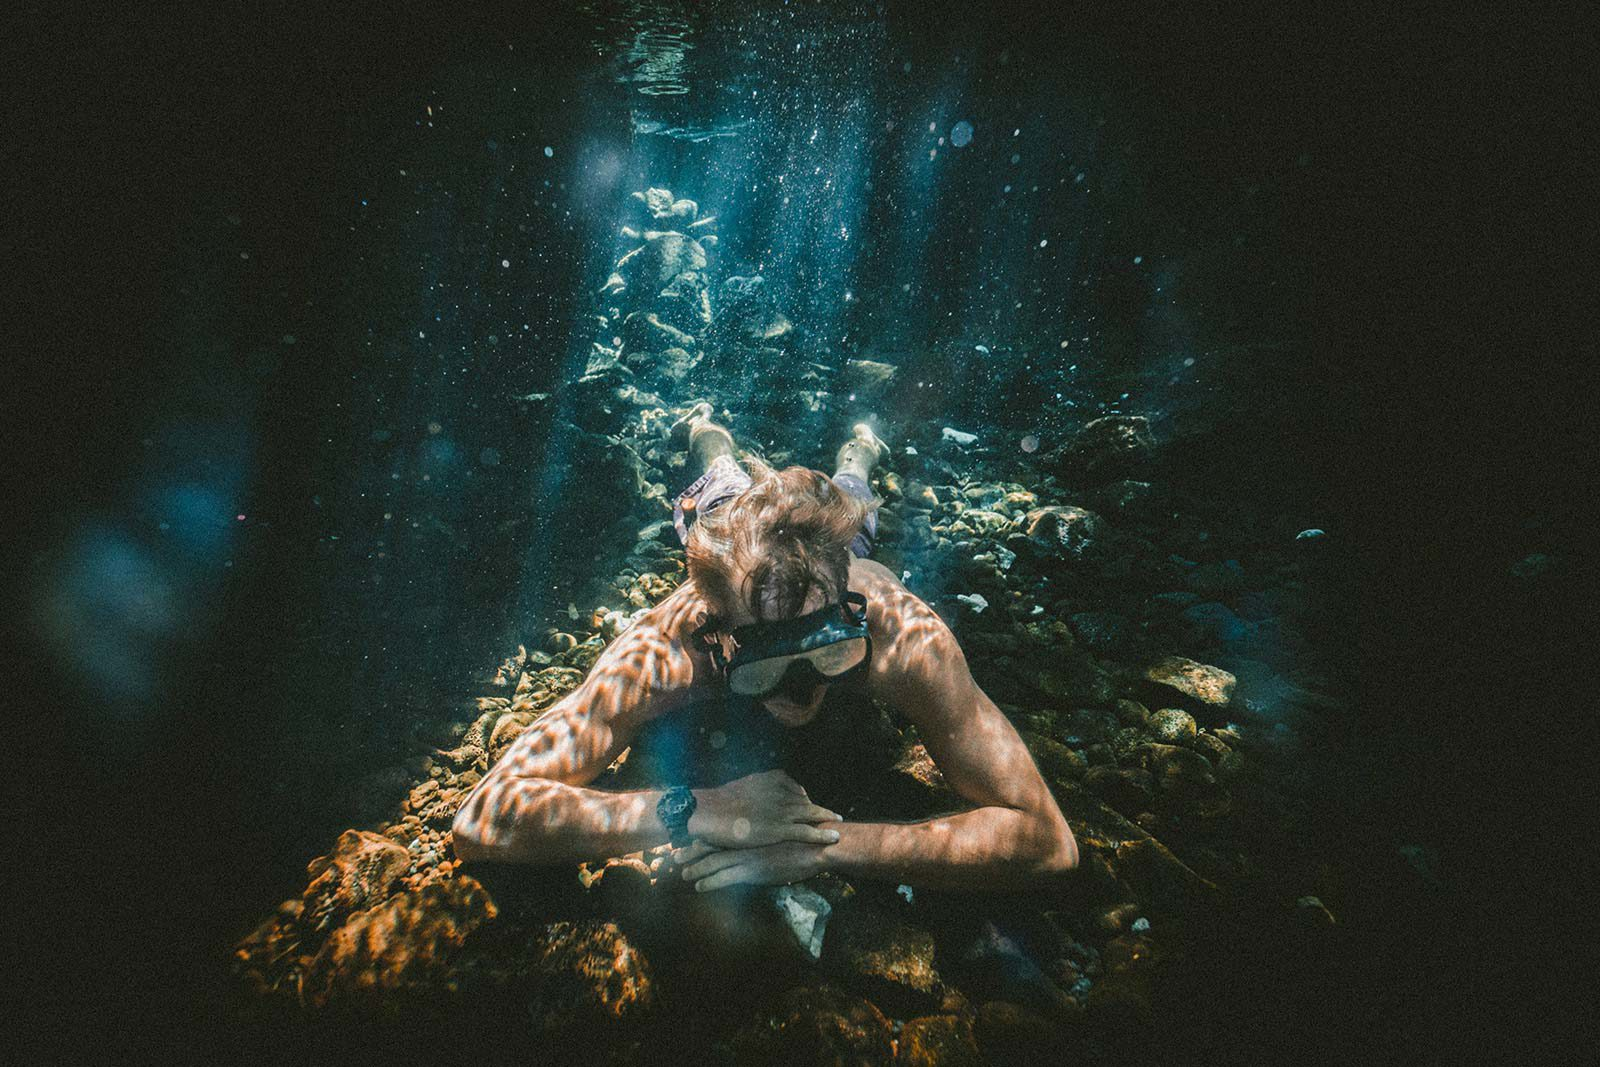 Person in goggles lying on coral underwater.